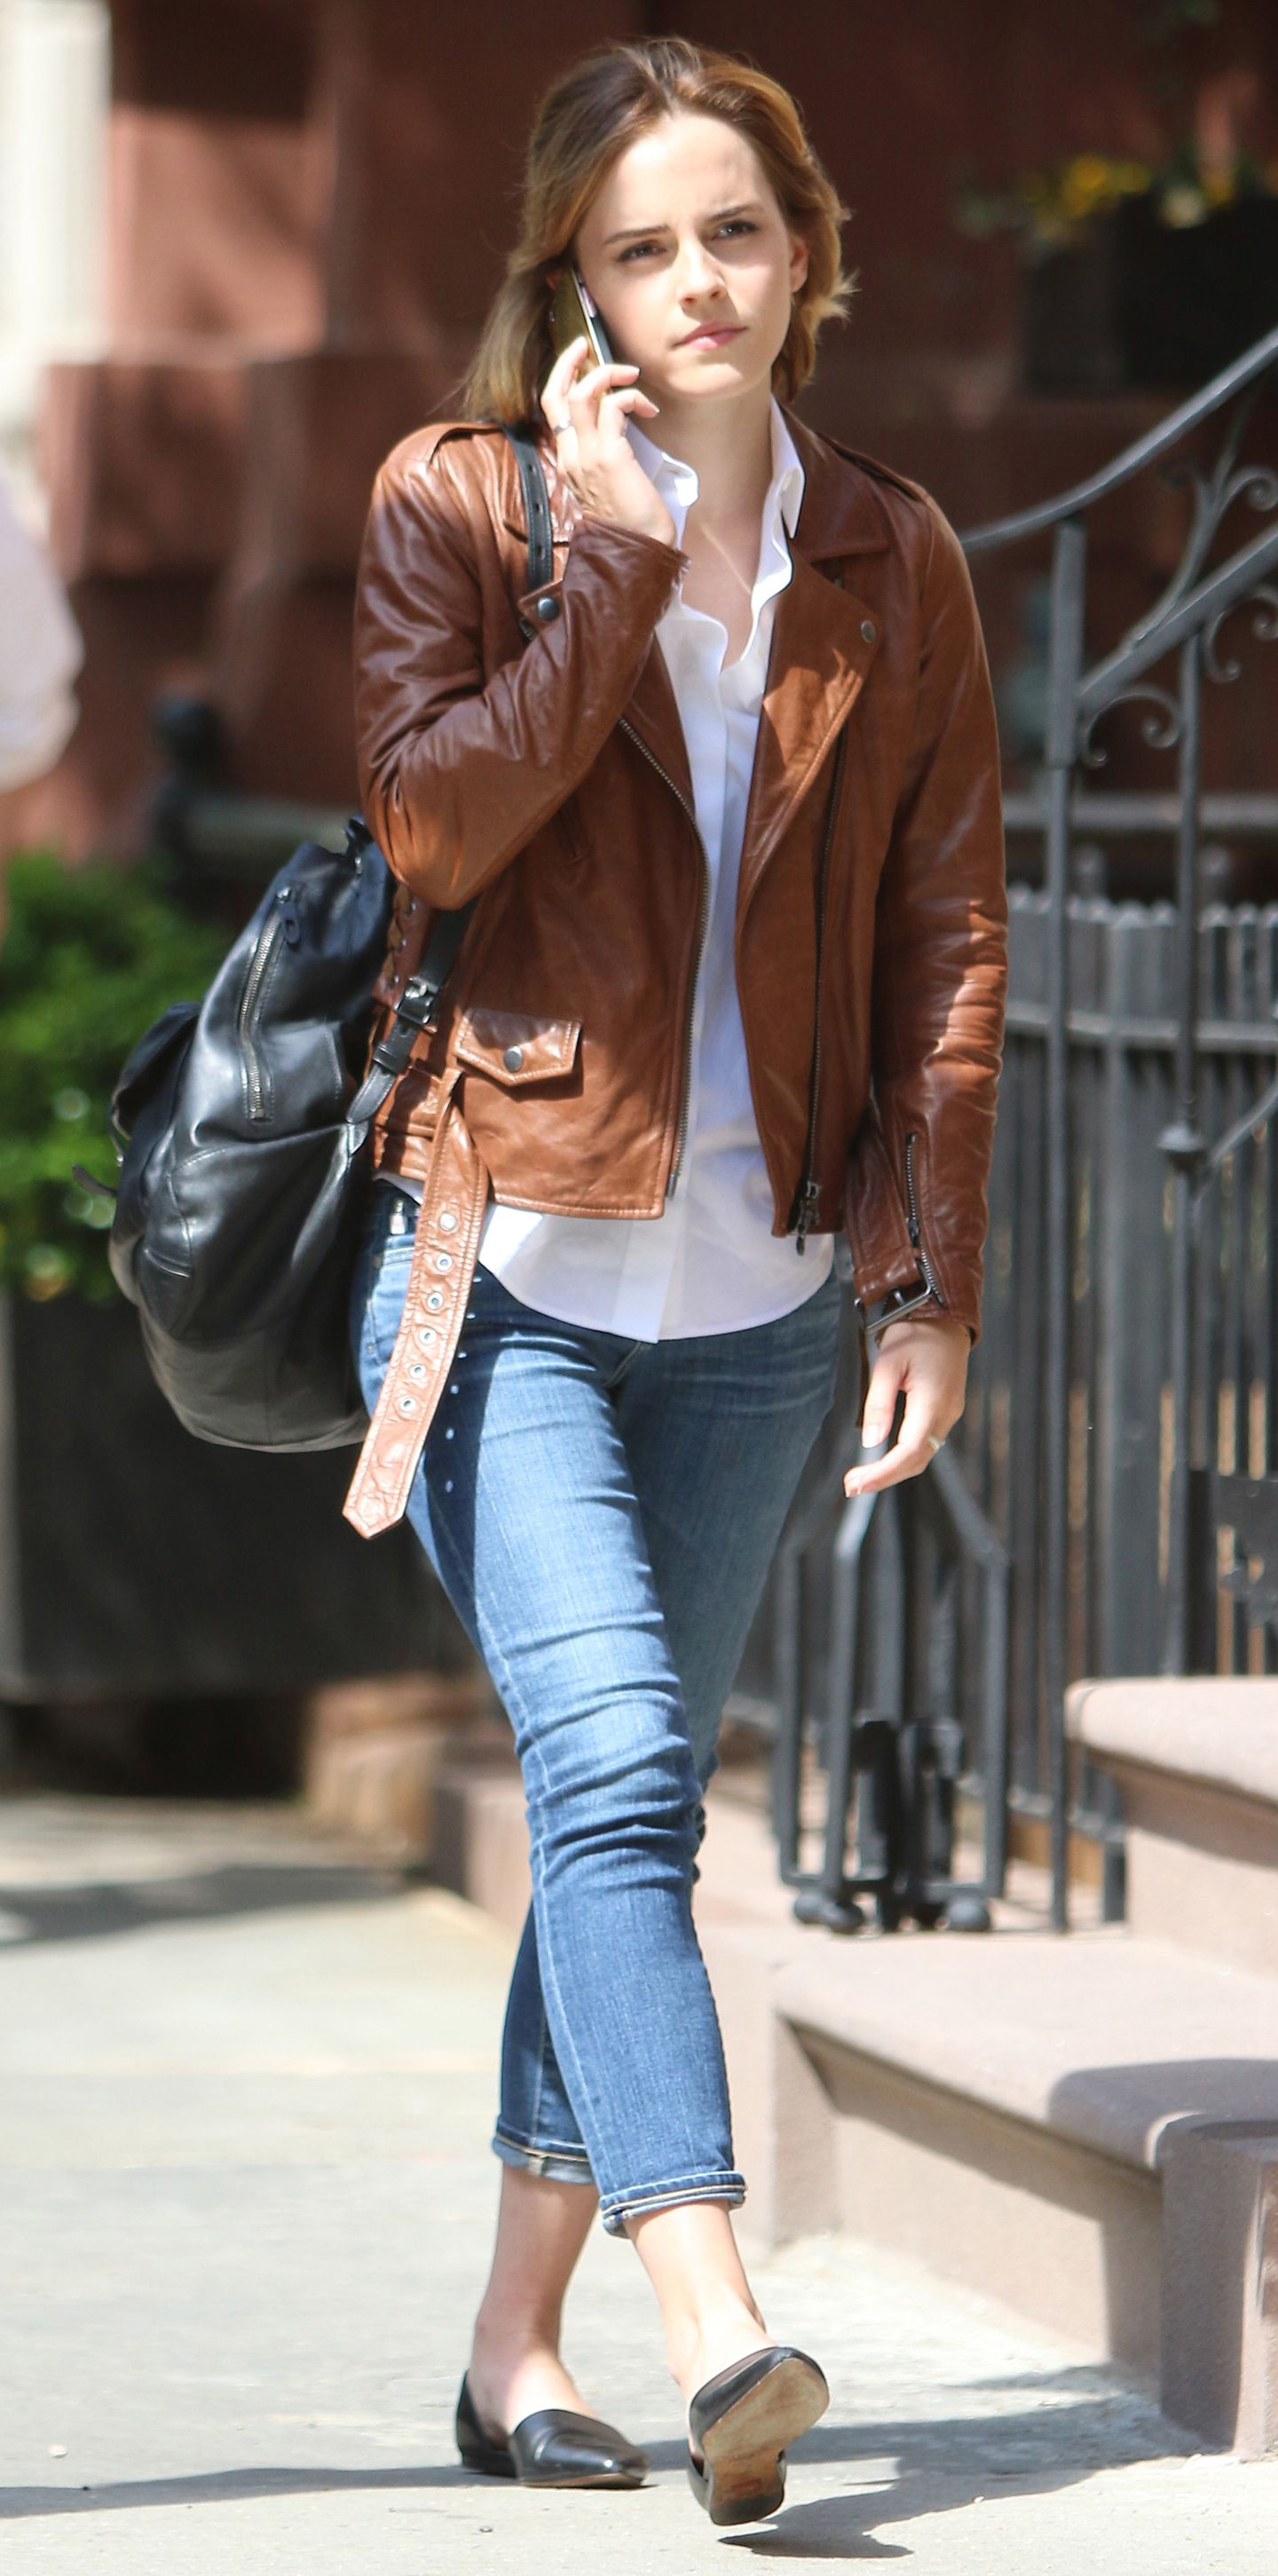 Look of the Day Drawstring backpack, Emma watson and